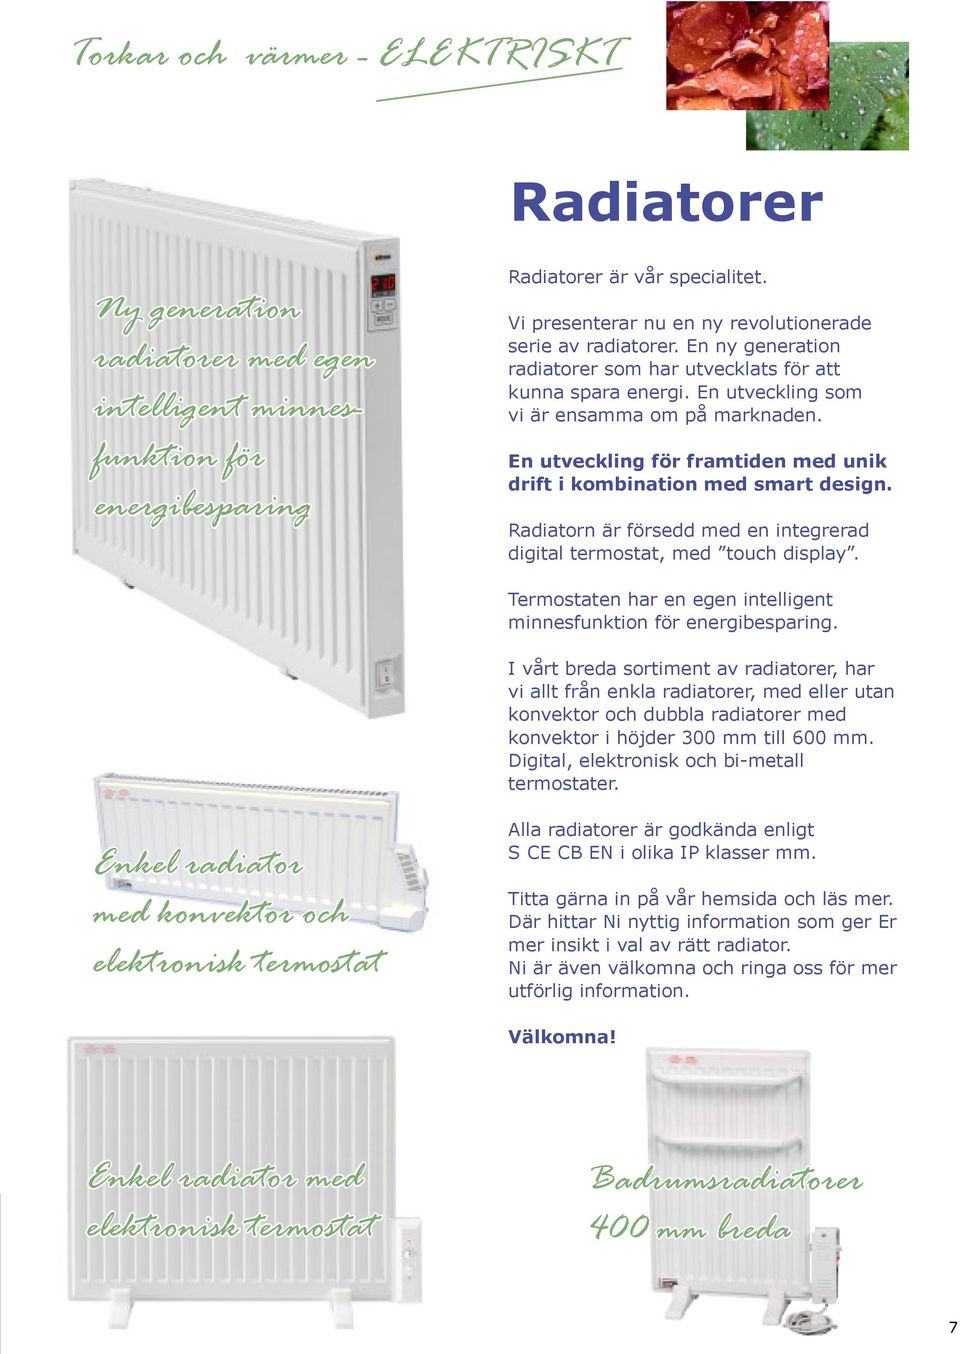 Radiatorn Är försedd med en integrerad digital termostat, med touch display. Termostaten har en egen intelligent minnesfunktion för energibesparing.